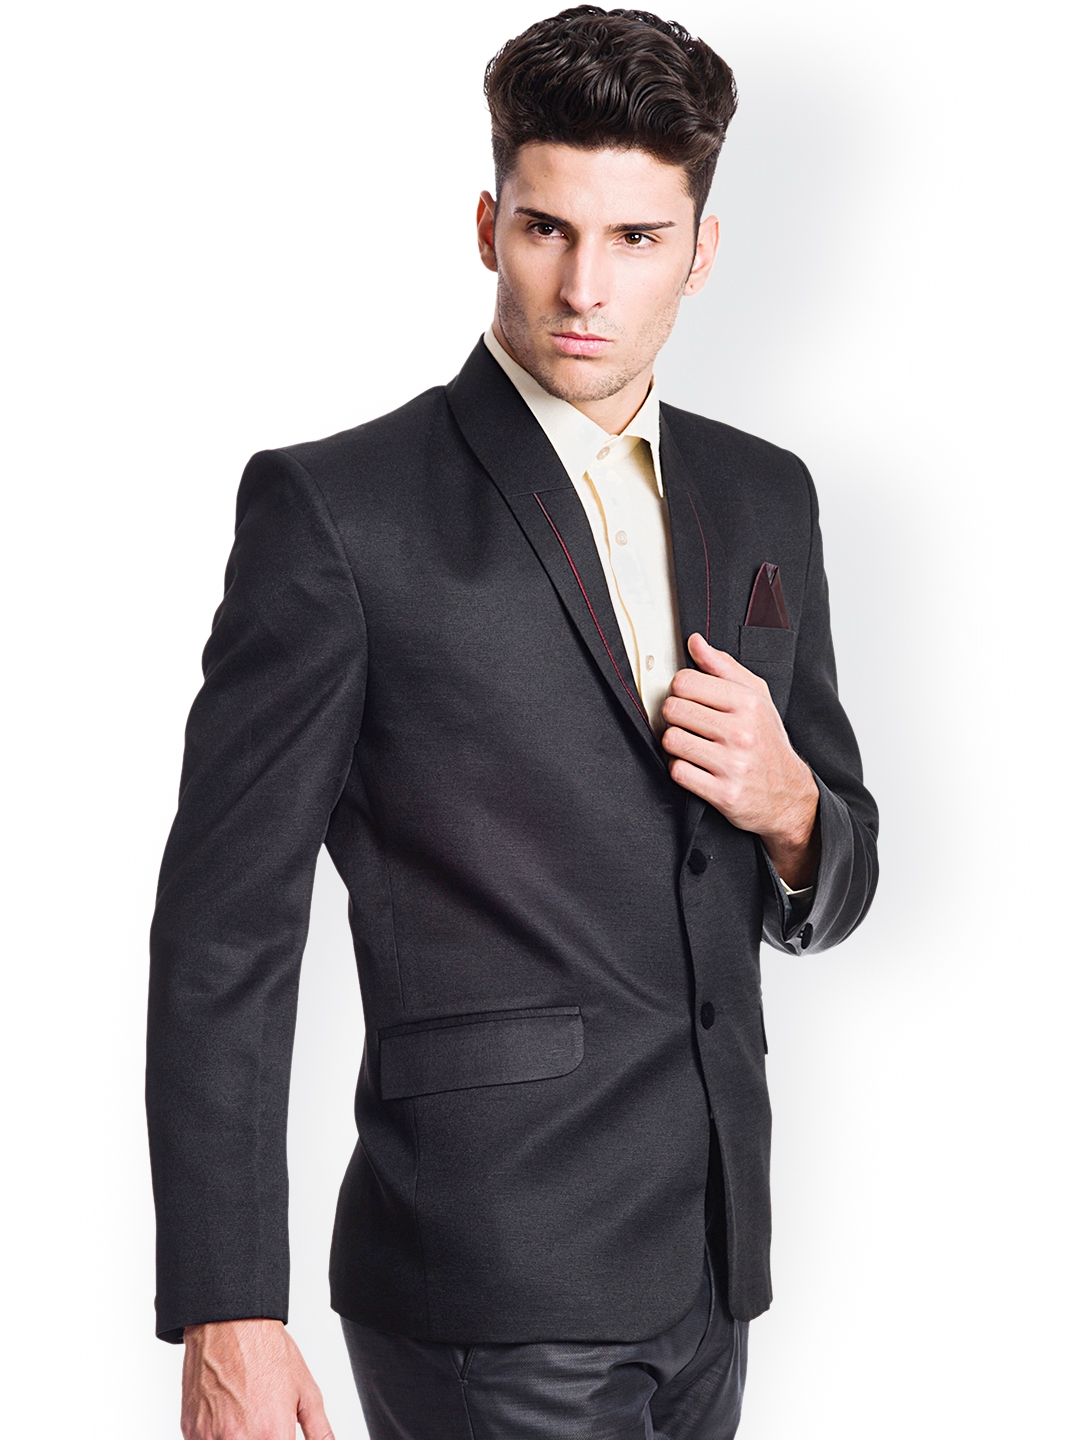 c1147a34249b Buy Wintage Black Single Breasted Tailored Fit Formal Blazer ...